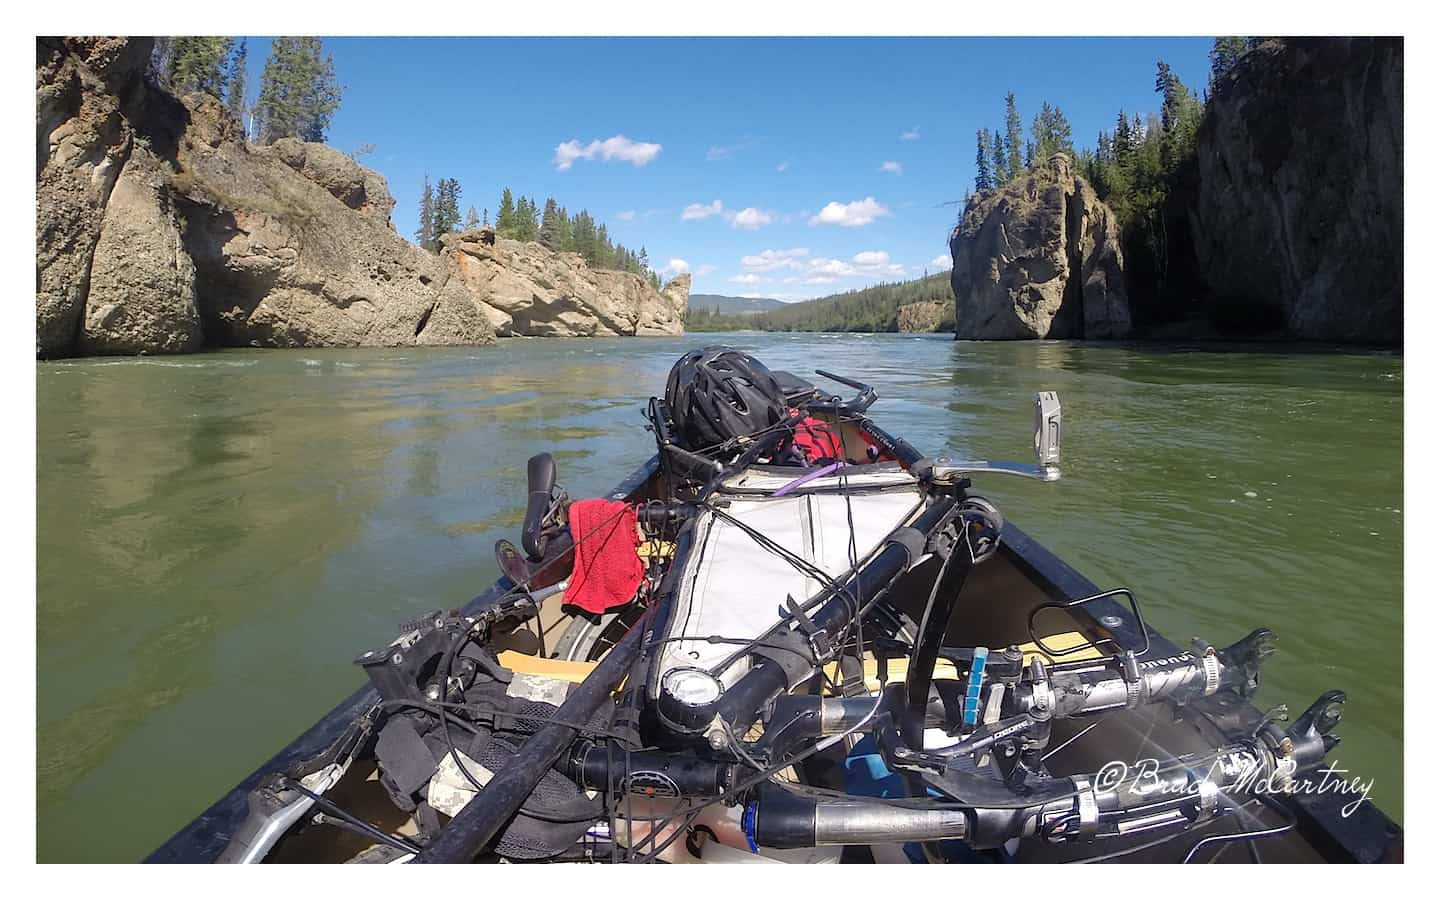 Final approach to Fiver Fingers Rapids on the Yukon River with my bicycle strapped on tight!